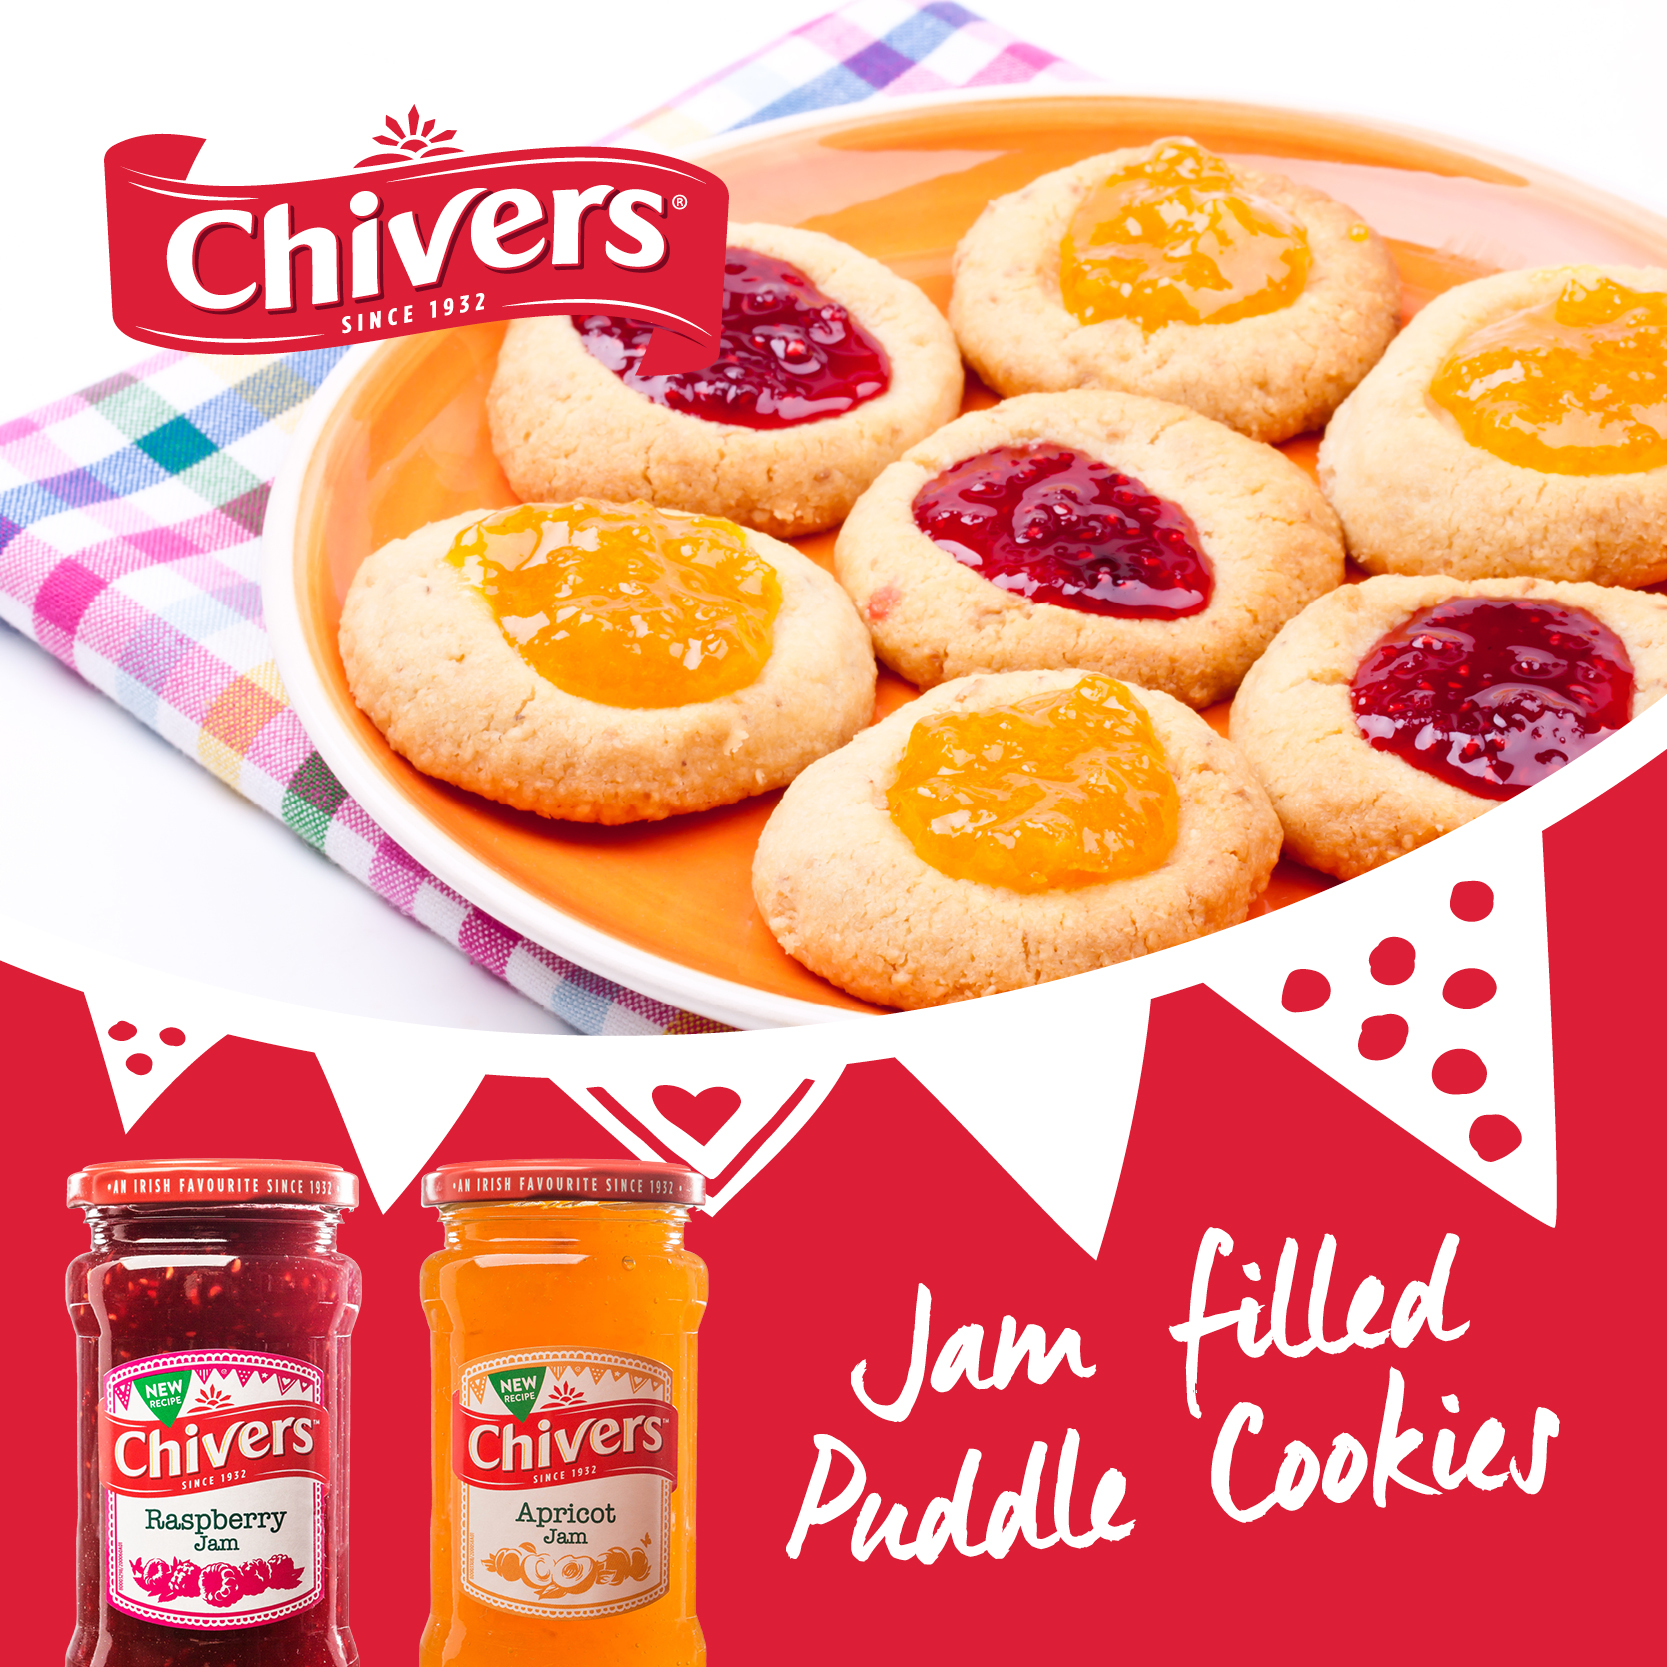 Jam filled 'Puddle' Cookies